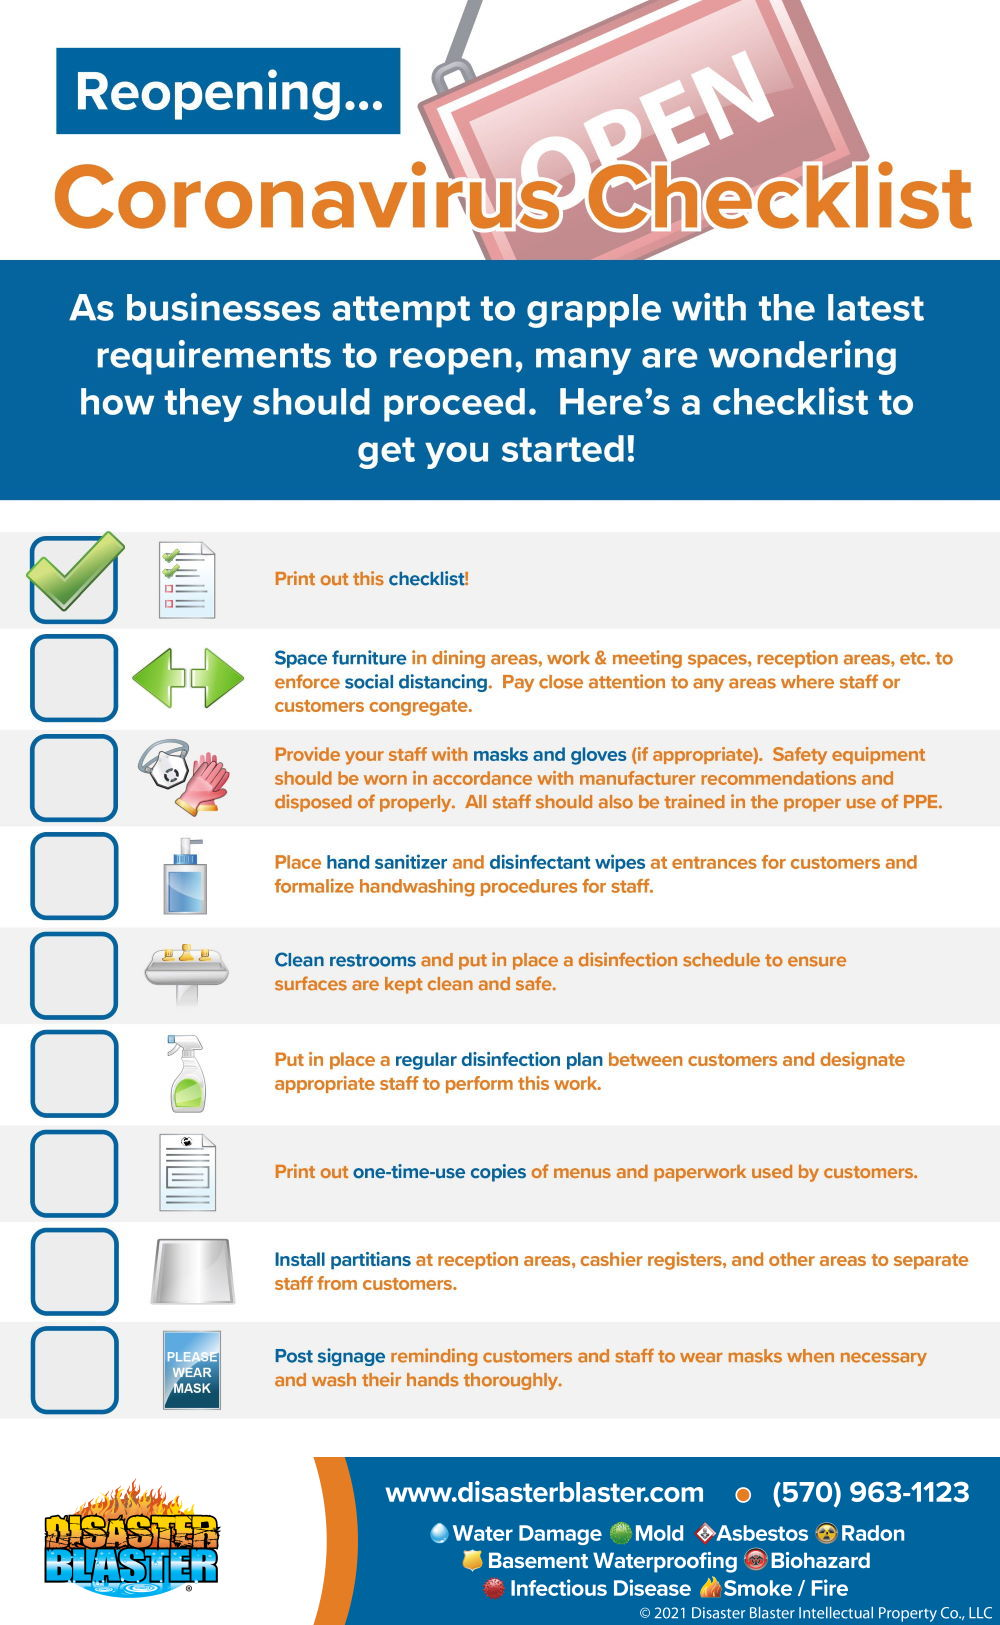 Checklist for reopening your business from Coronavirus Infographic